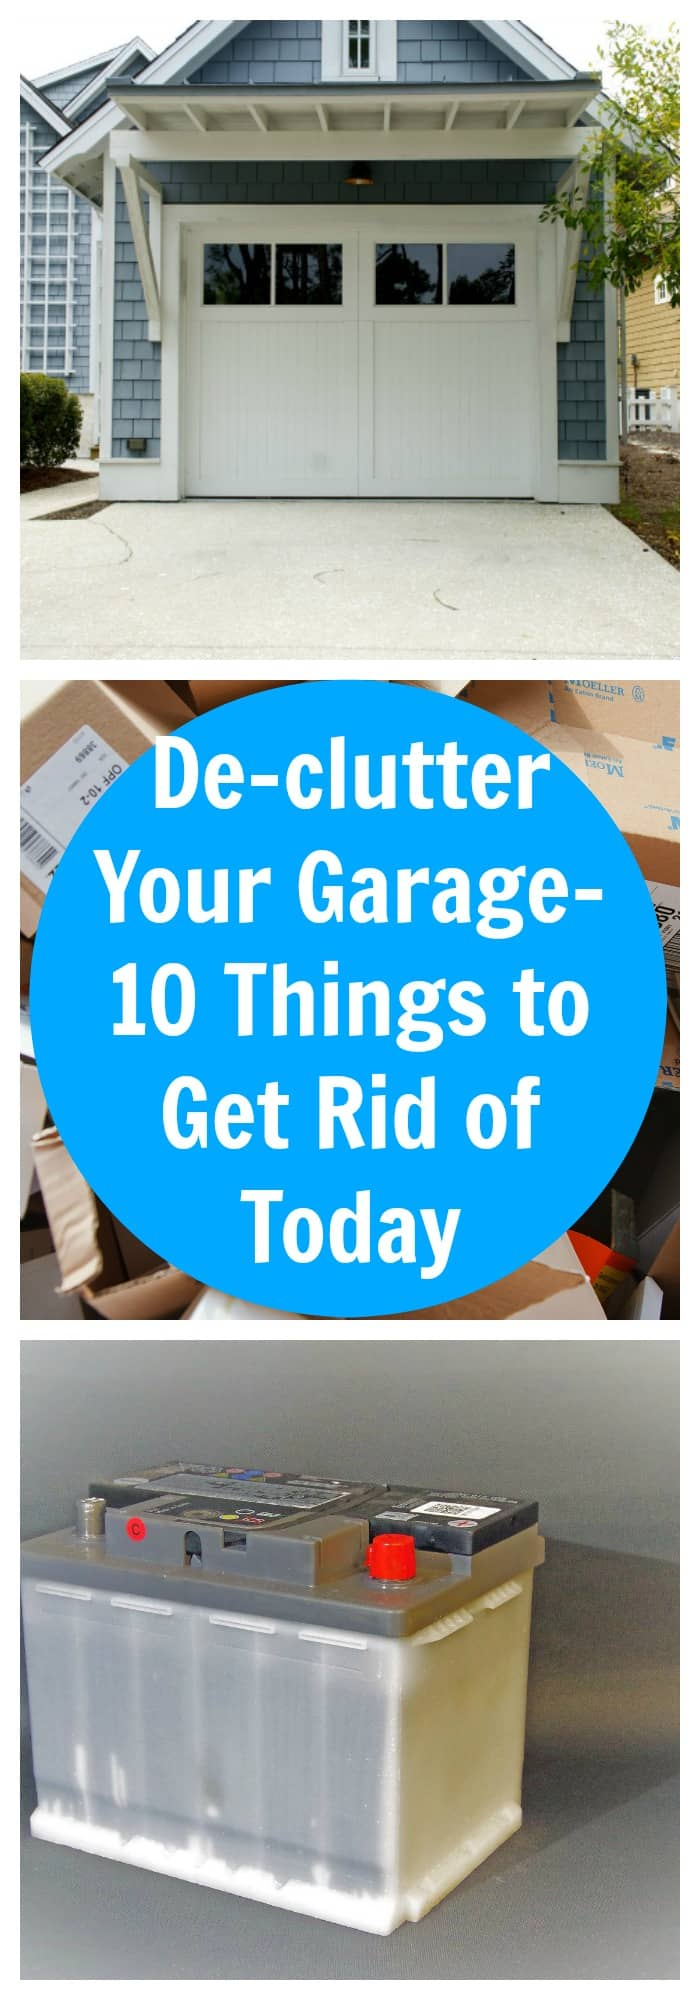 Organization-De-clutter Your Garage-10 Things to Get Rid of Today--The Organized Mom